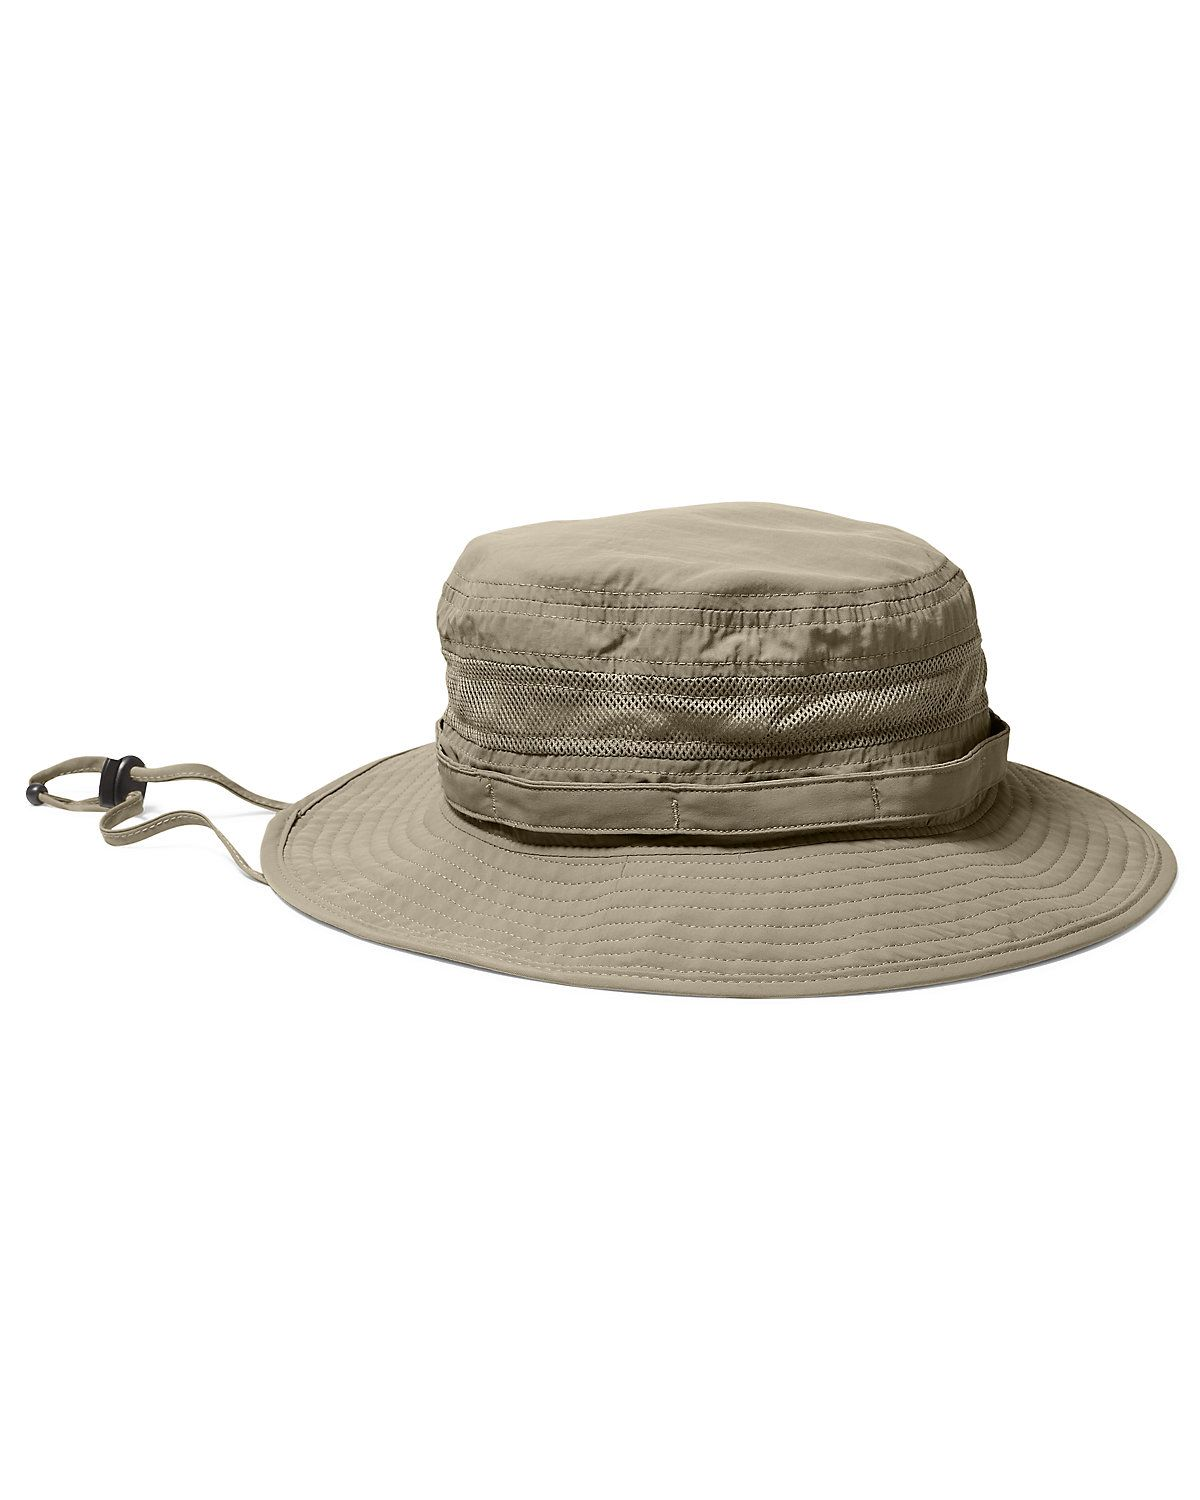 Exploration UPF Vented Boonie Hat  e09a61d5eaf